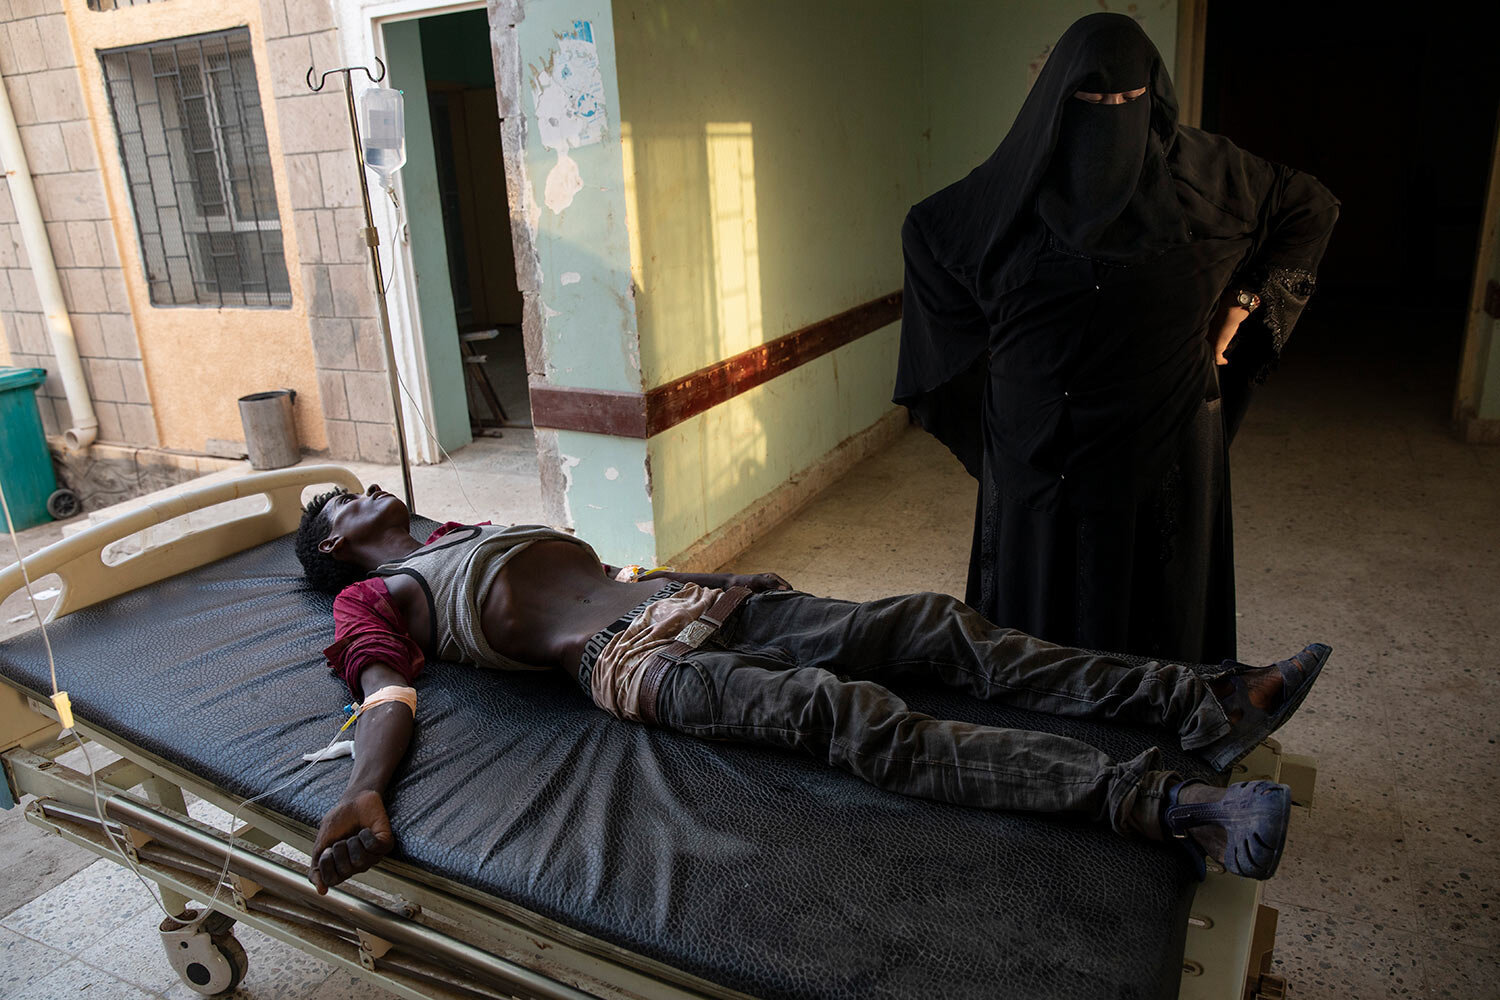 An Ethiopian Tigray migrant who was imprisoned by traffickers for months, lies on a gurney accompanied by a nurse at the Ras al-Ara Hospital in Lahj, Yemen. Nurses gave him fluids but he died several hours later. (AP Photo/Nariman El-Mofty)